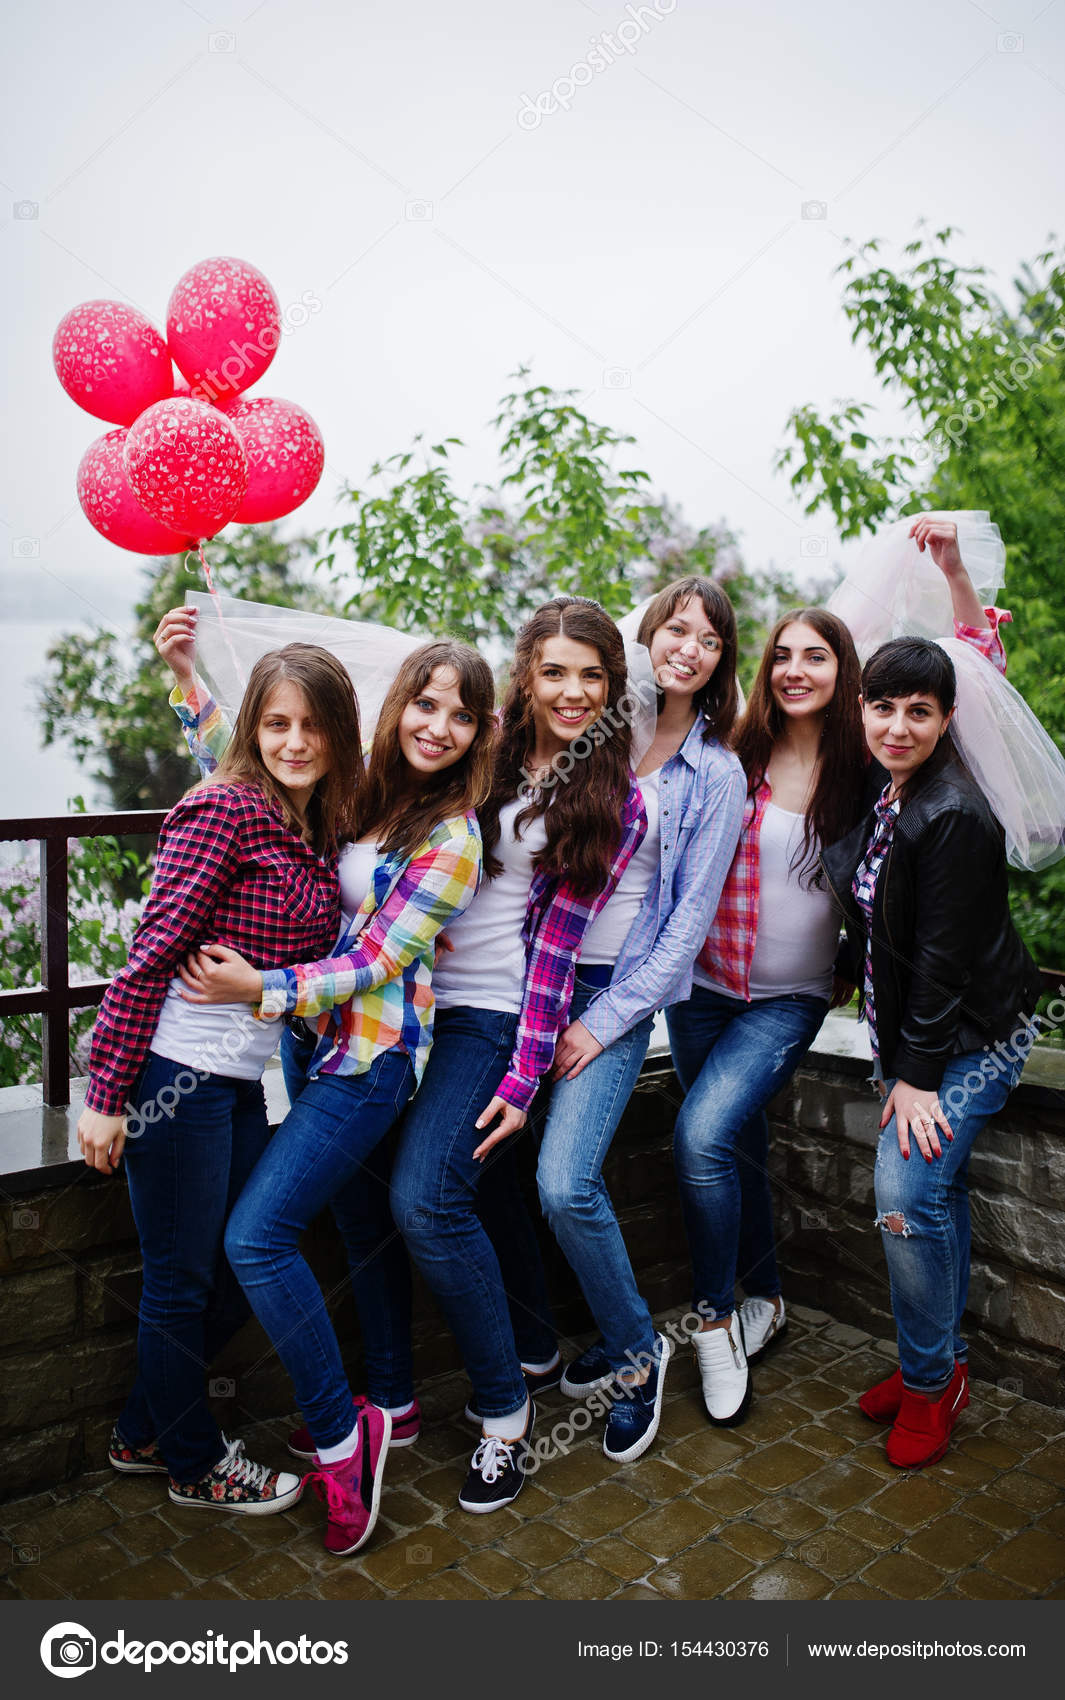 Group Of Six Girls Having Fun At Hen Party With Balloons